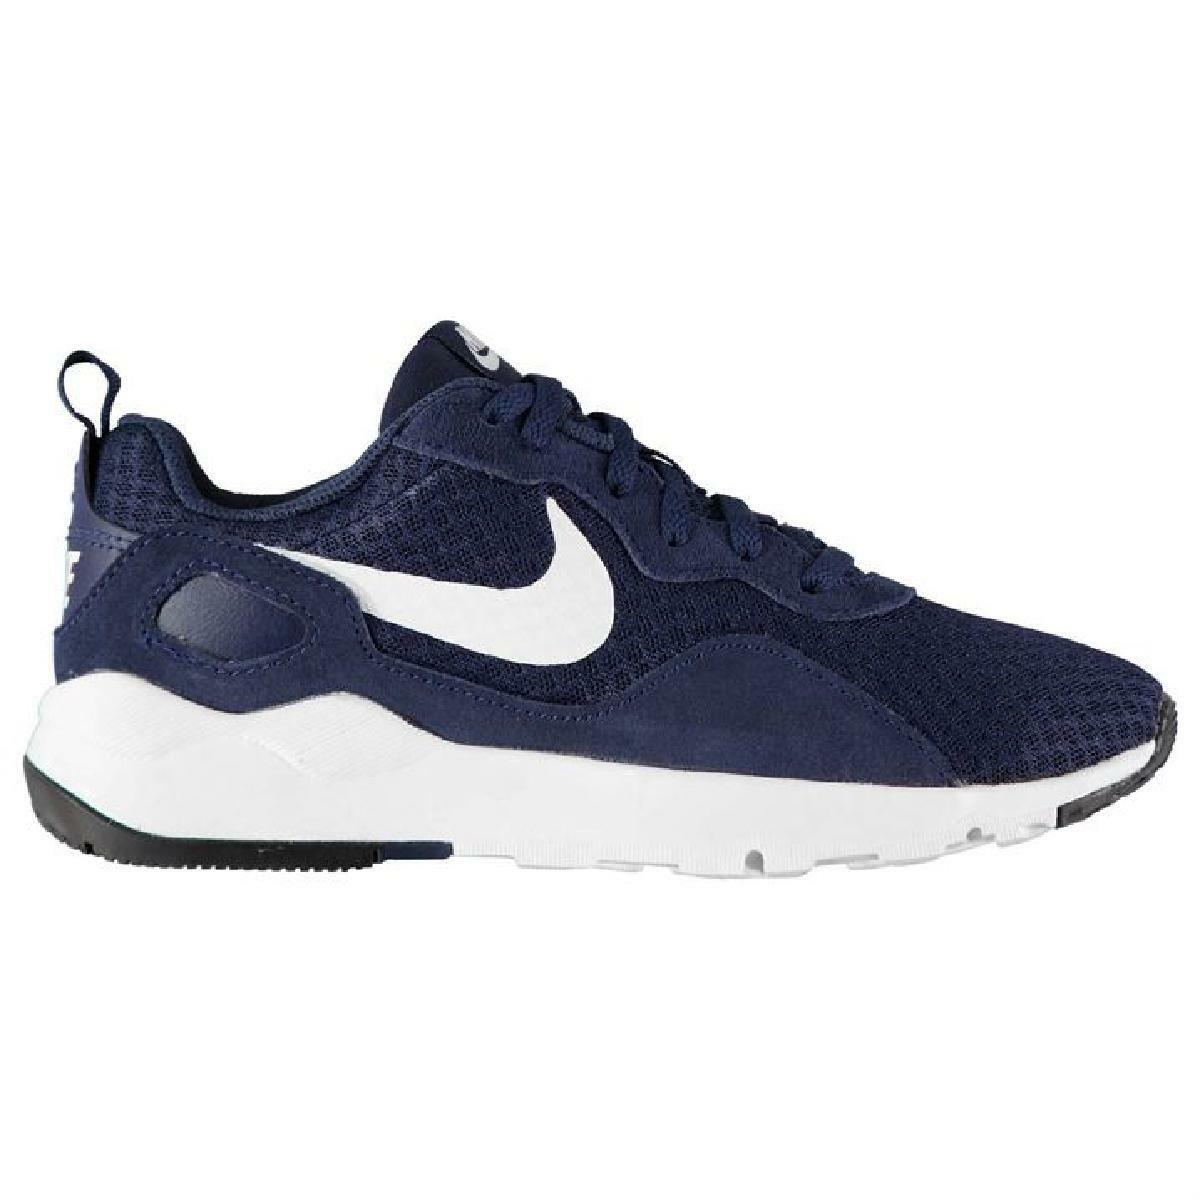 Nike  Ladies zapatos  Nike Zapatillas  Corriendo Trainers Deportes LD Runner 4151 317f01